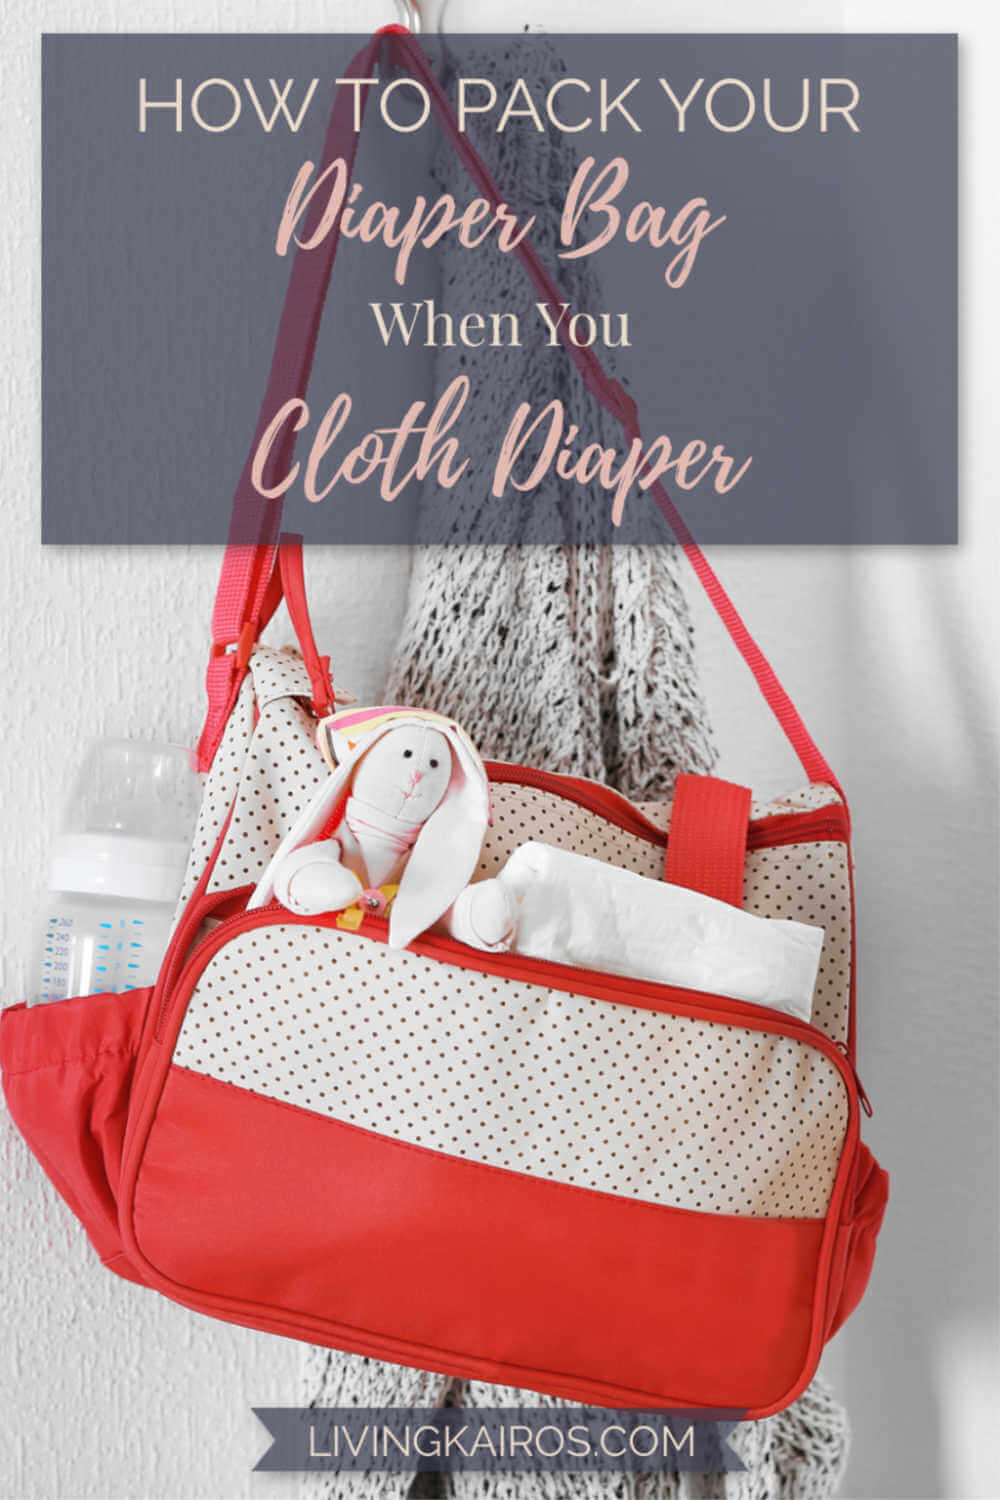 Pack Your Diaper Bag When You Cloth